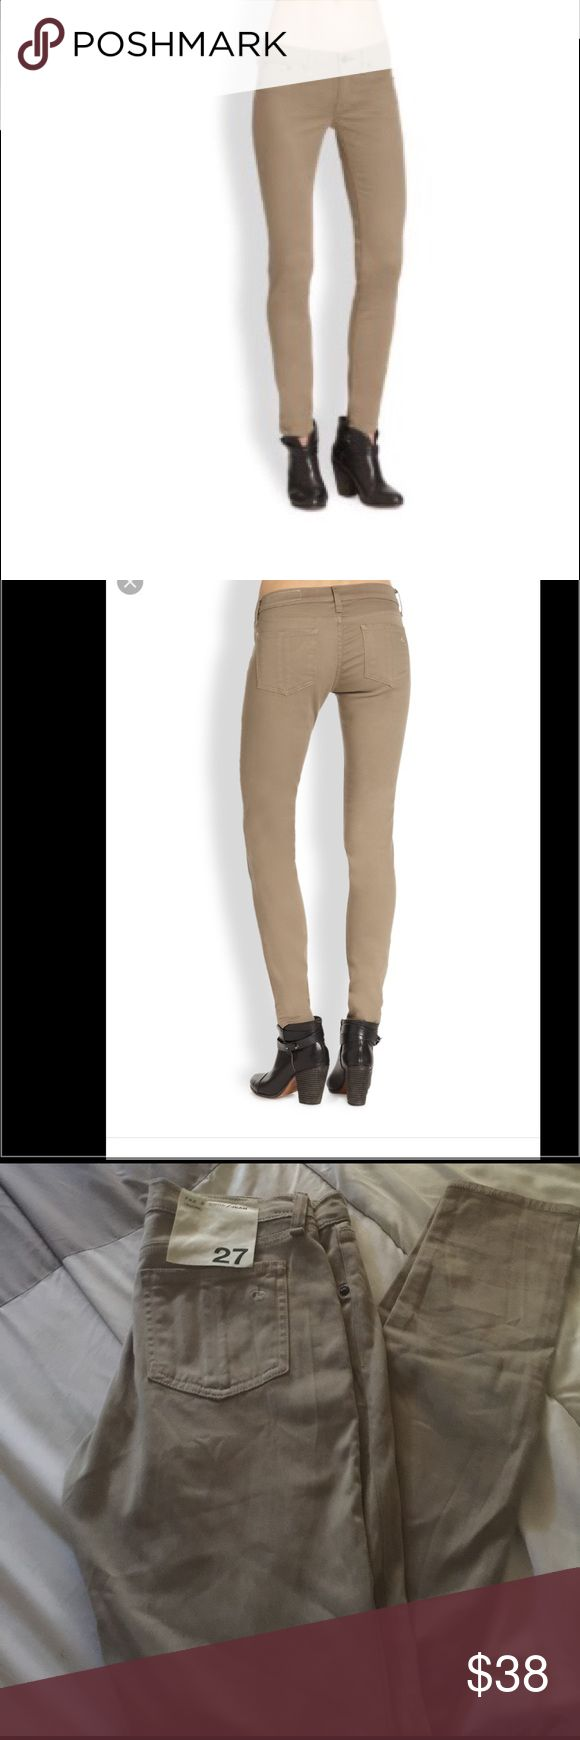 Rag & Bone desert khaki leggings size 27 Sorry no trades or modeling. Super soft and stretchy. Please let me know if you have any questions. Thanks for looking. Have a nice Day. rag & bone Pants Leggings